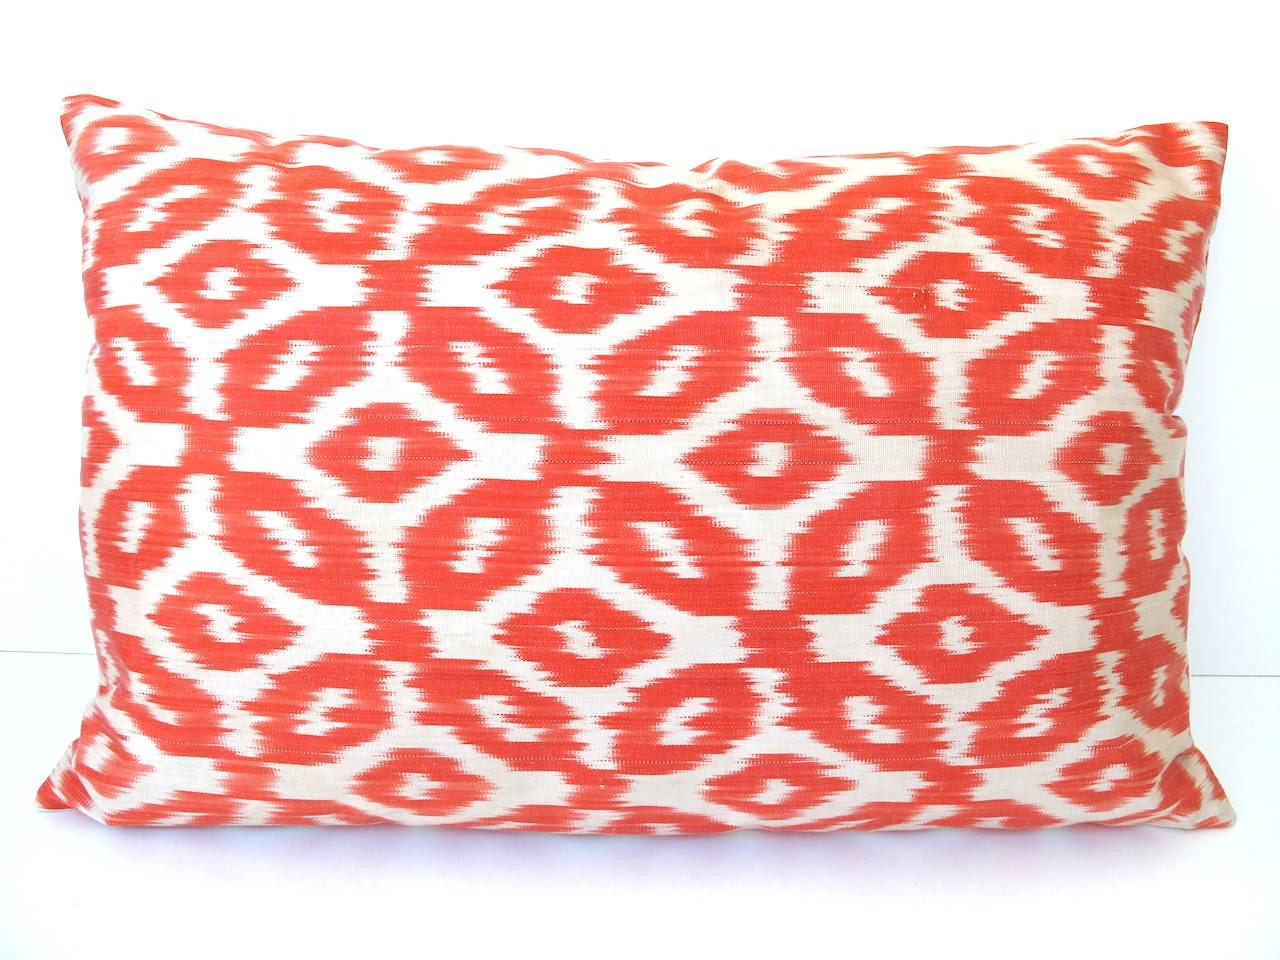 Ikat Throw Pillow Covers : Ikat Throw Pillow Cover Handwoven IKAT SILK by DivanCushu on Etsy